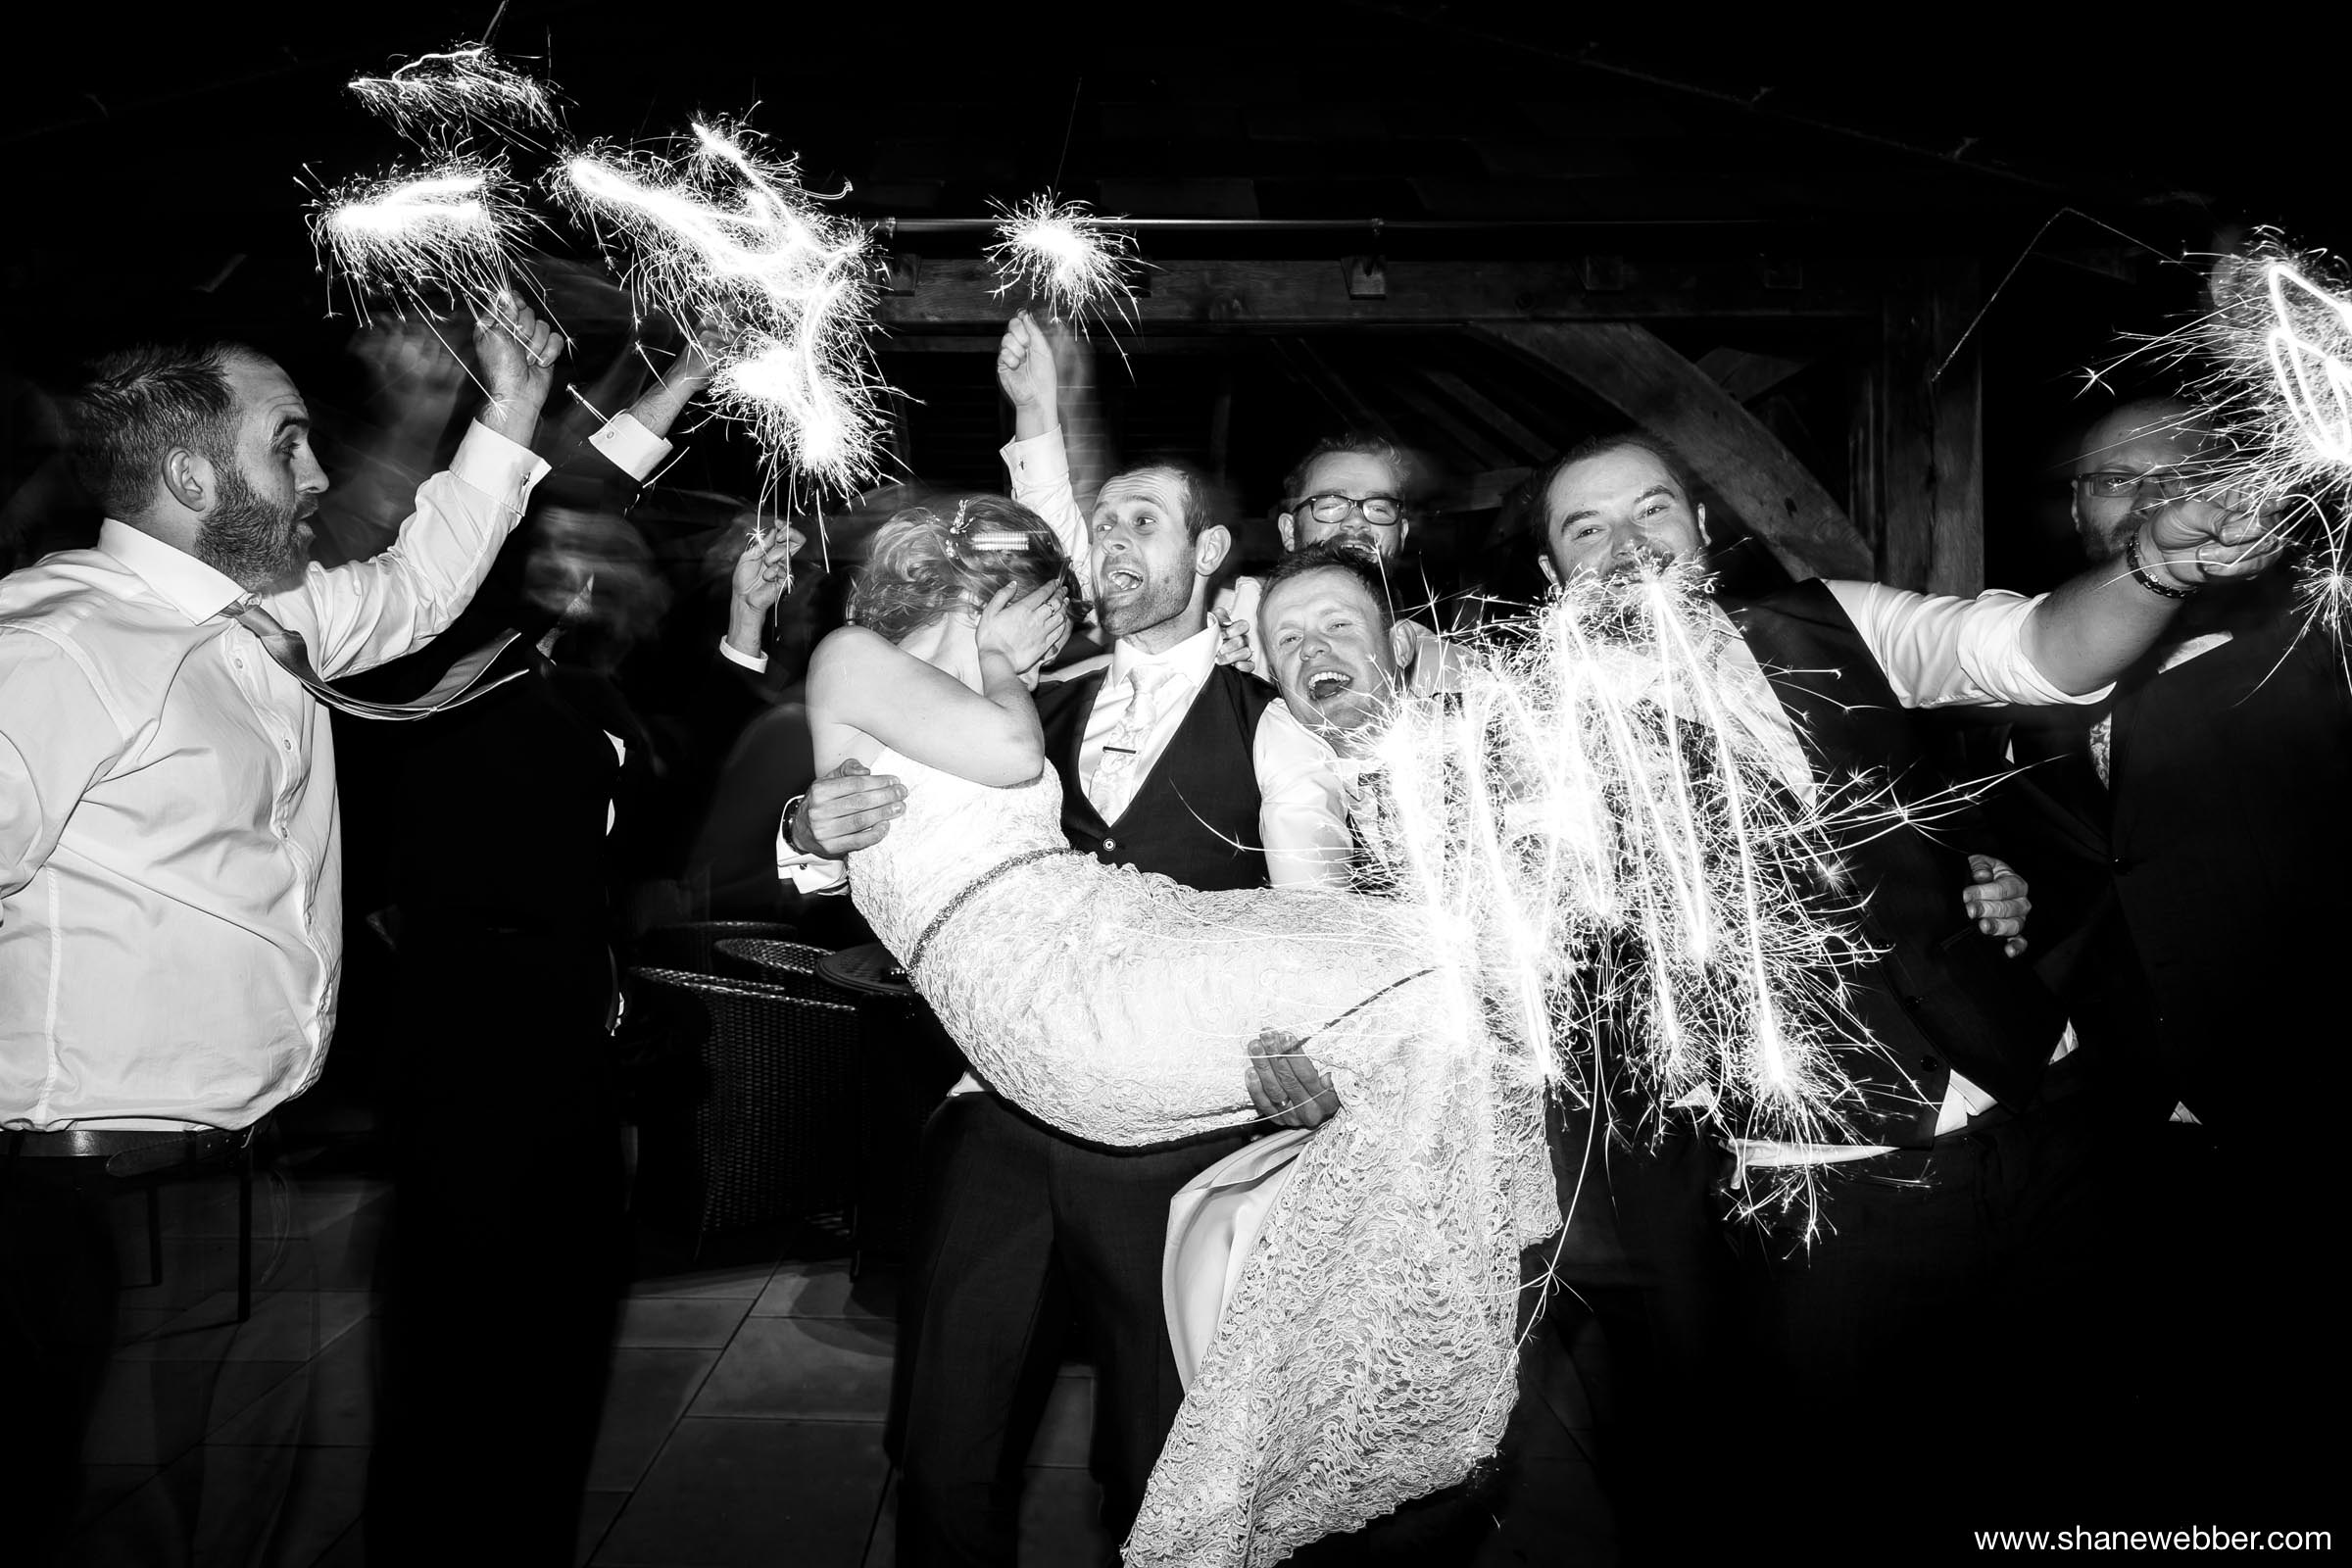 Fun wedding picture idea with sparklers